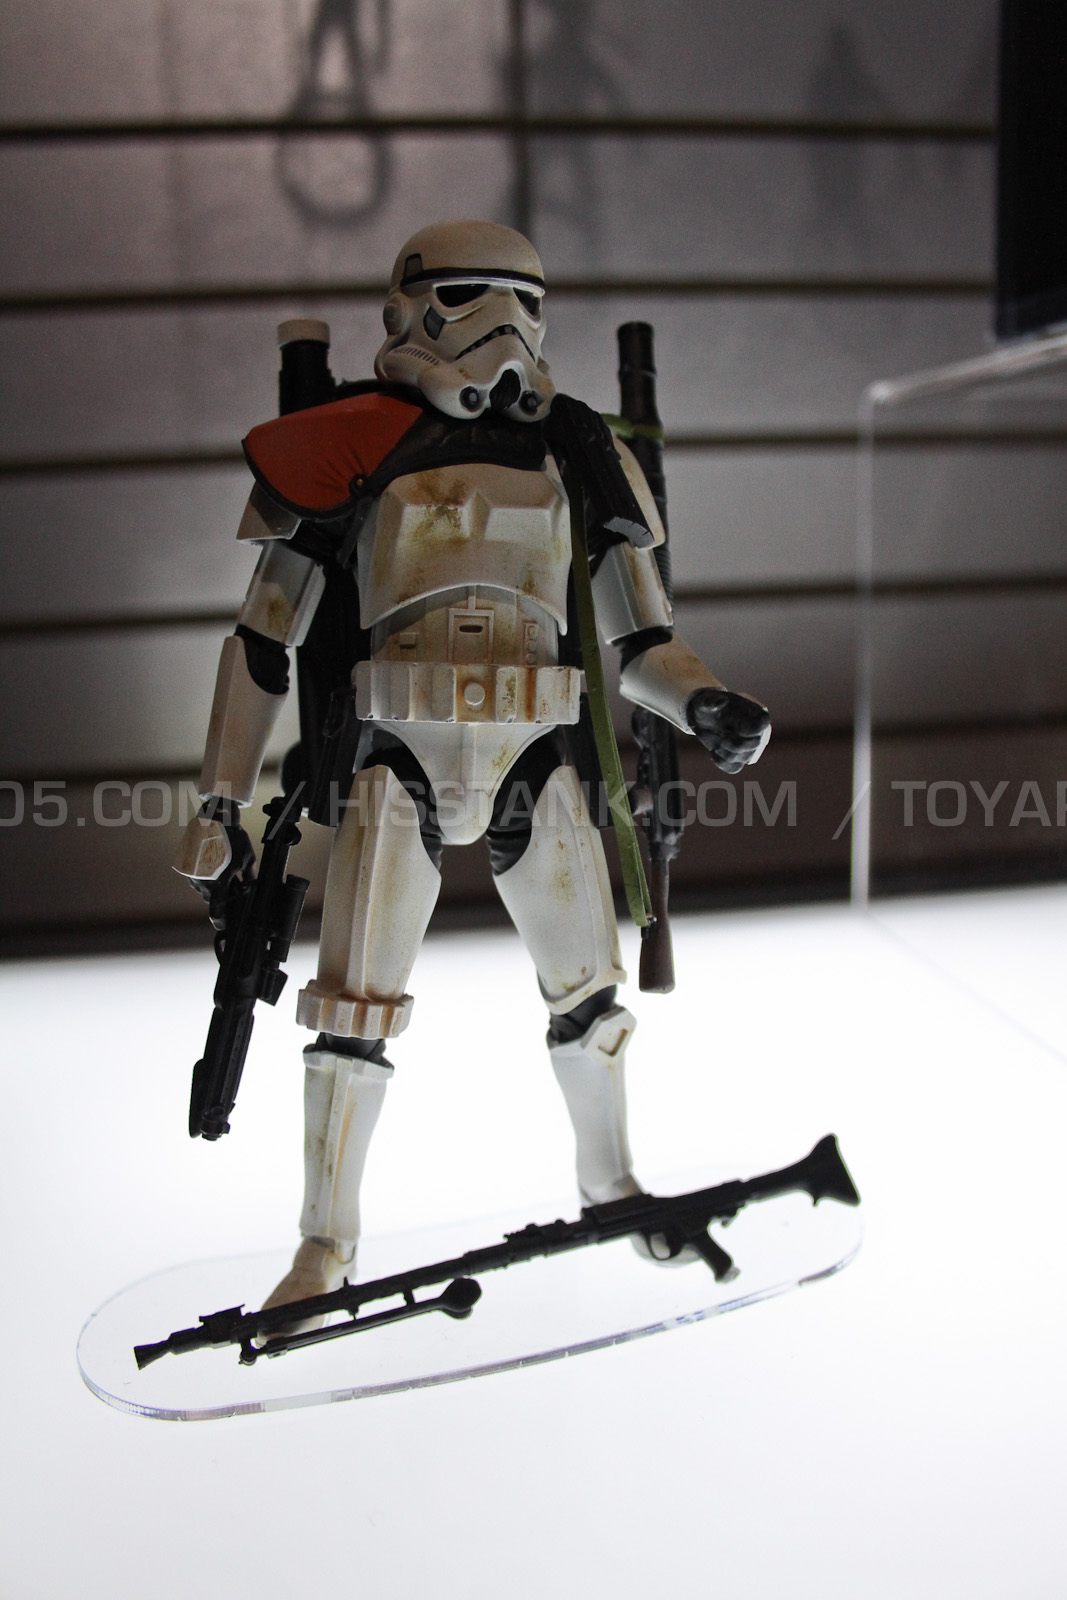 Star Wars Toys 2013 : Gallery for gt star wars toys